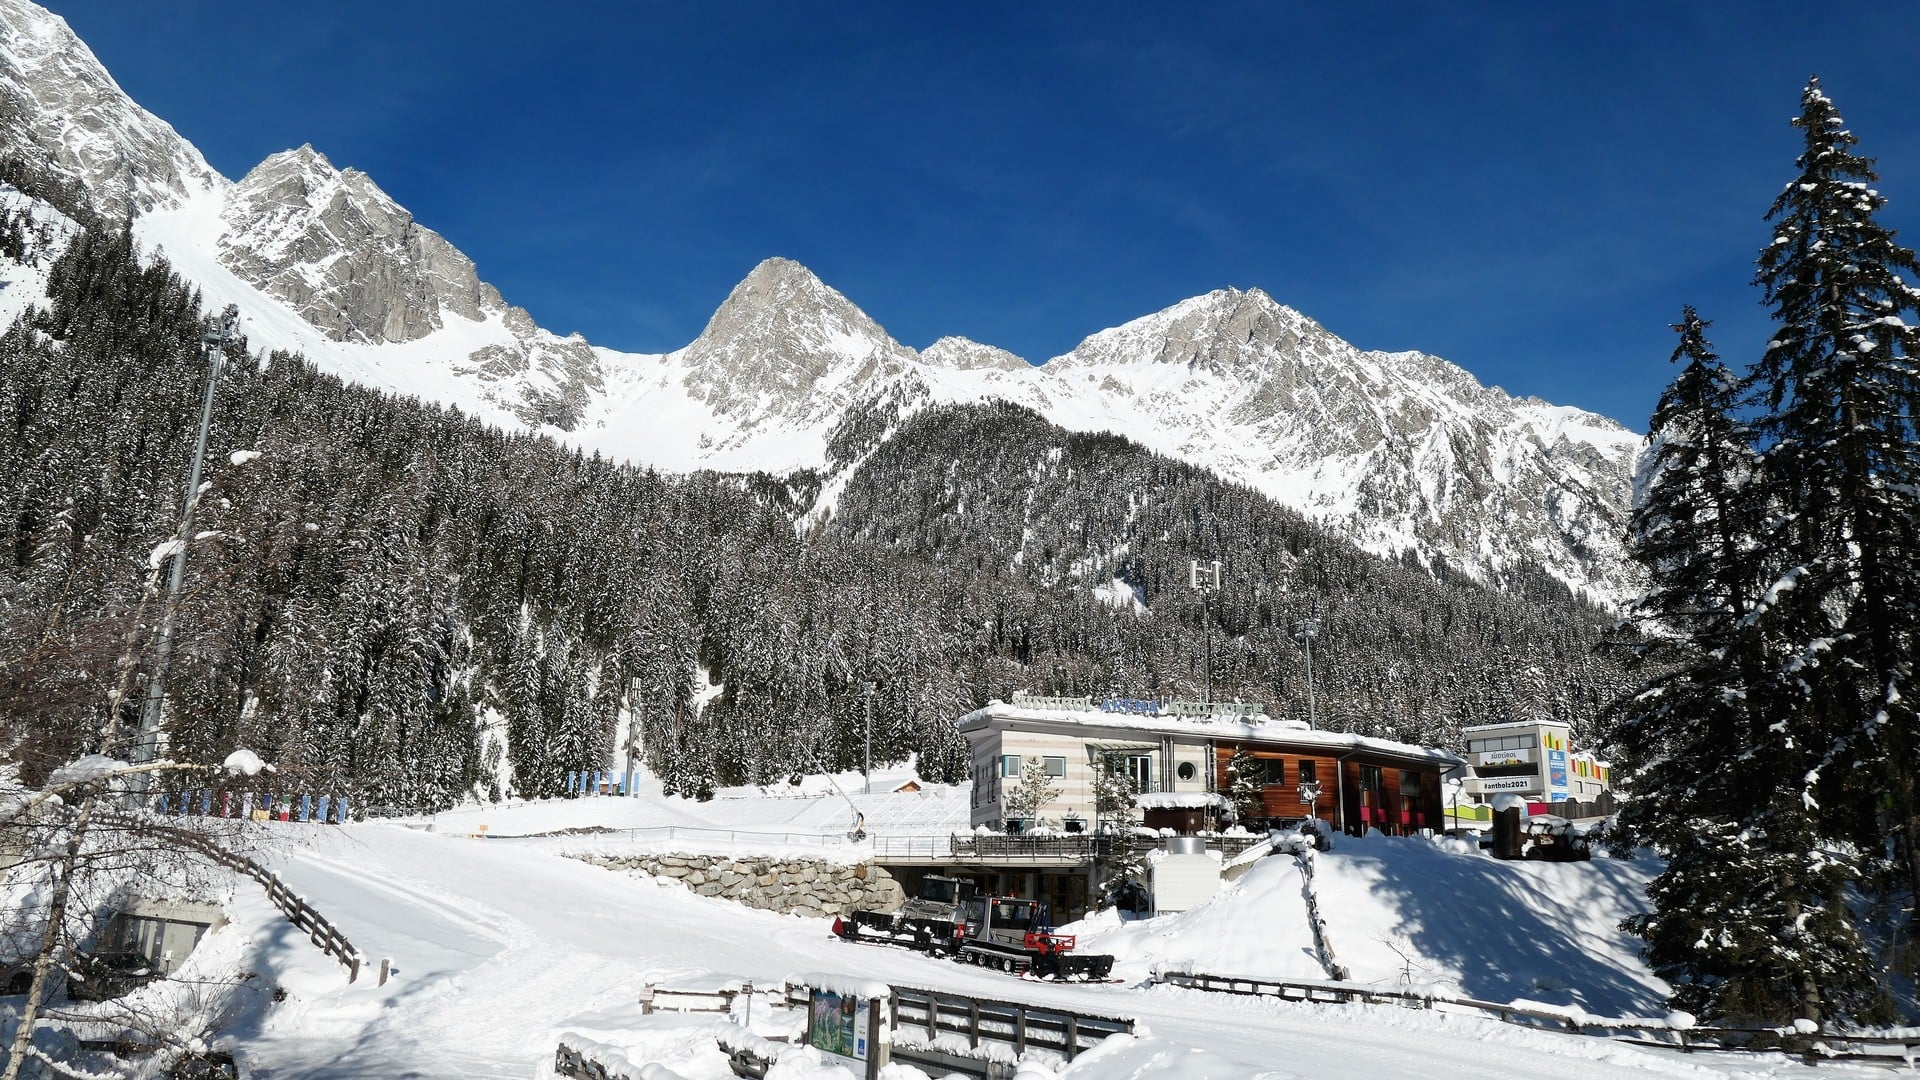 News from Antholz